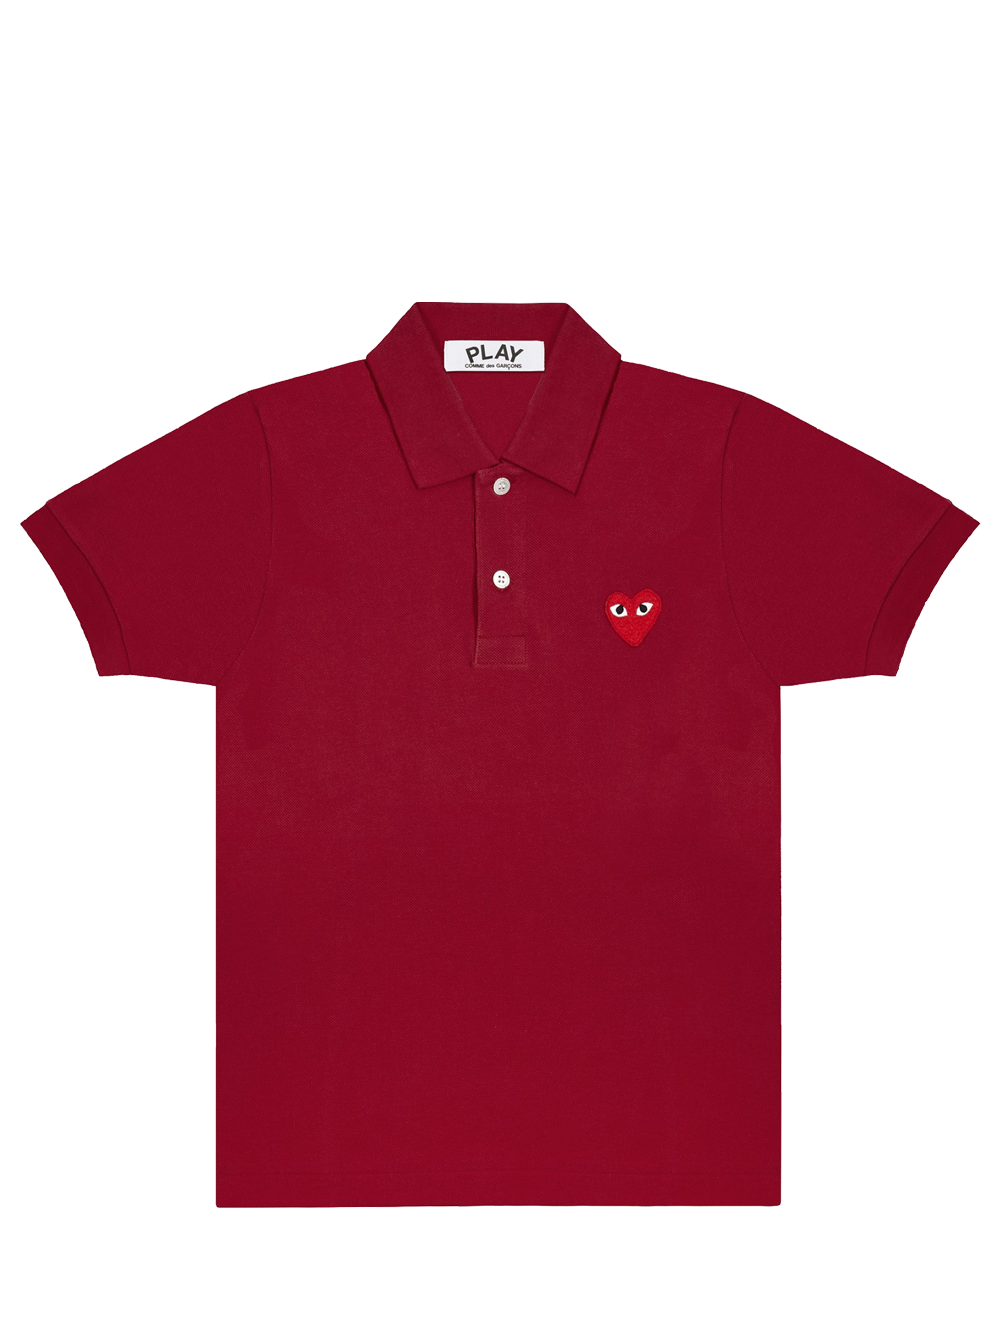 PLAY P1T006 PLAY POLO SHIRT RED HEART BURGUNDY